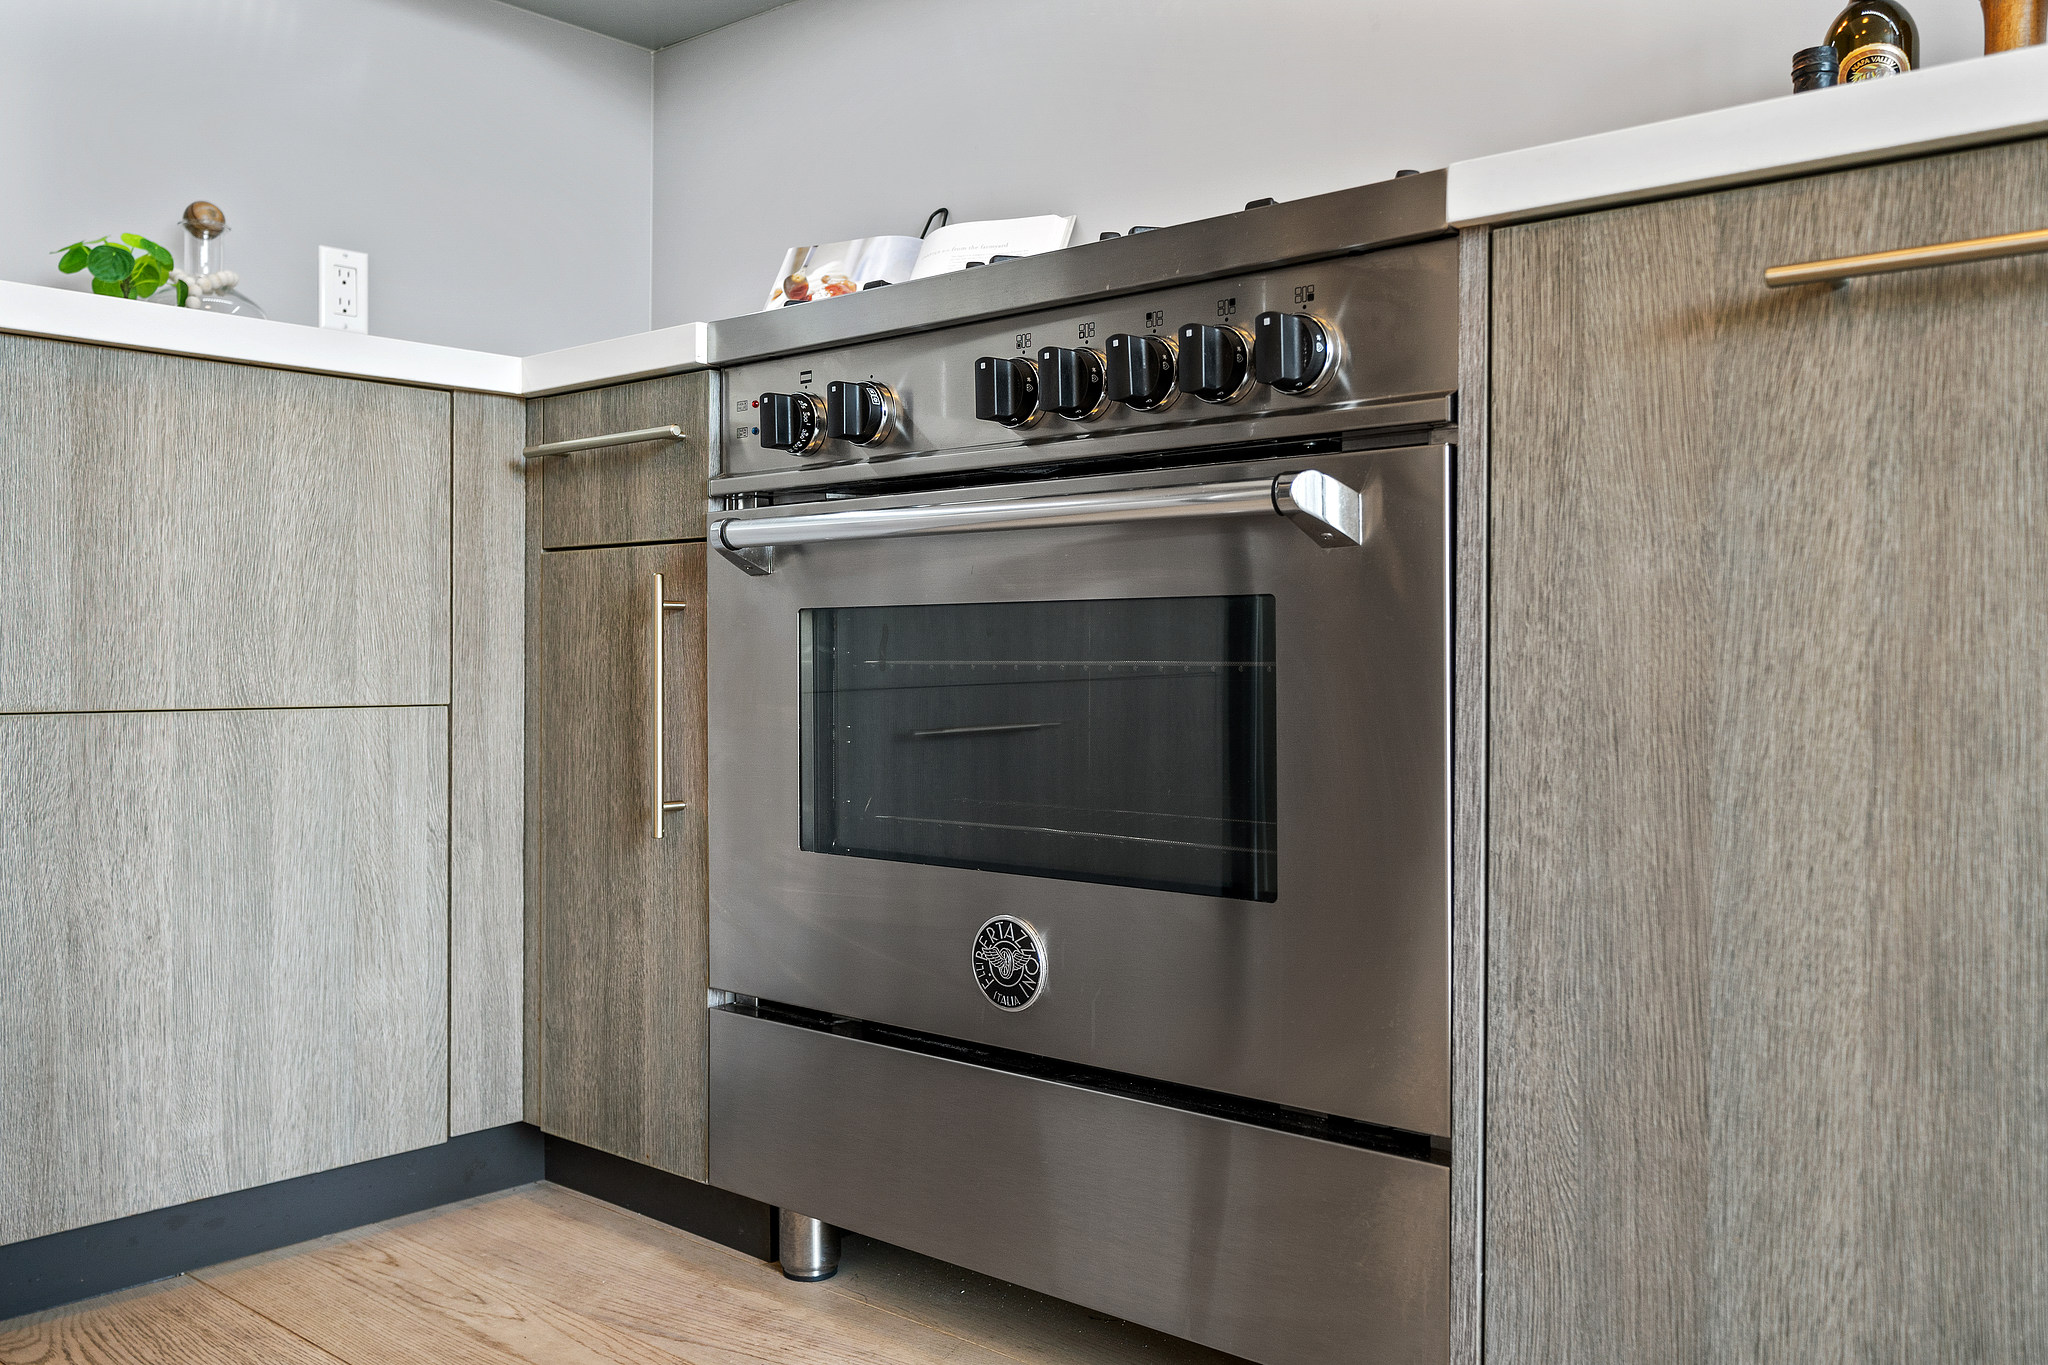 Stainless Steel Oven - SF Home